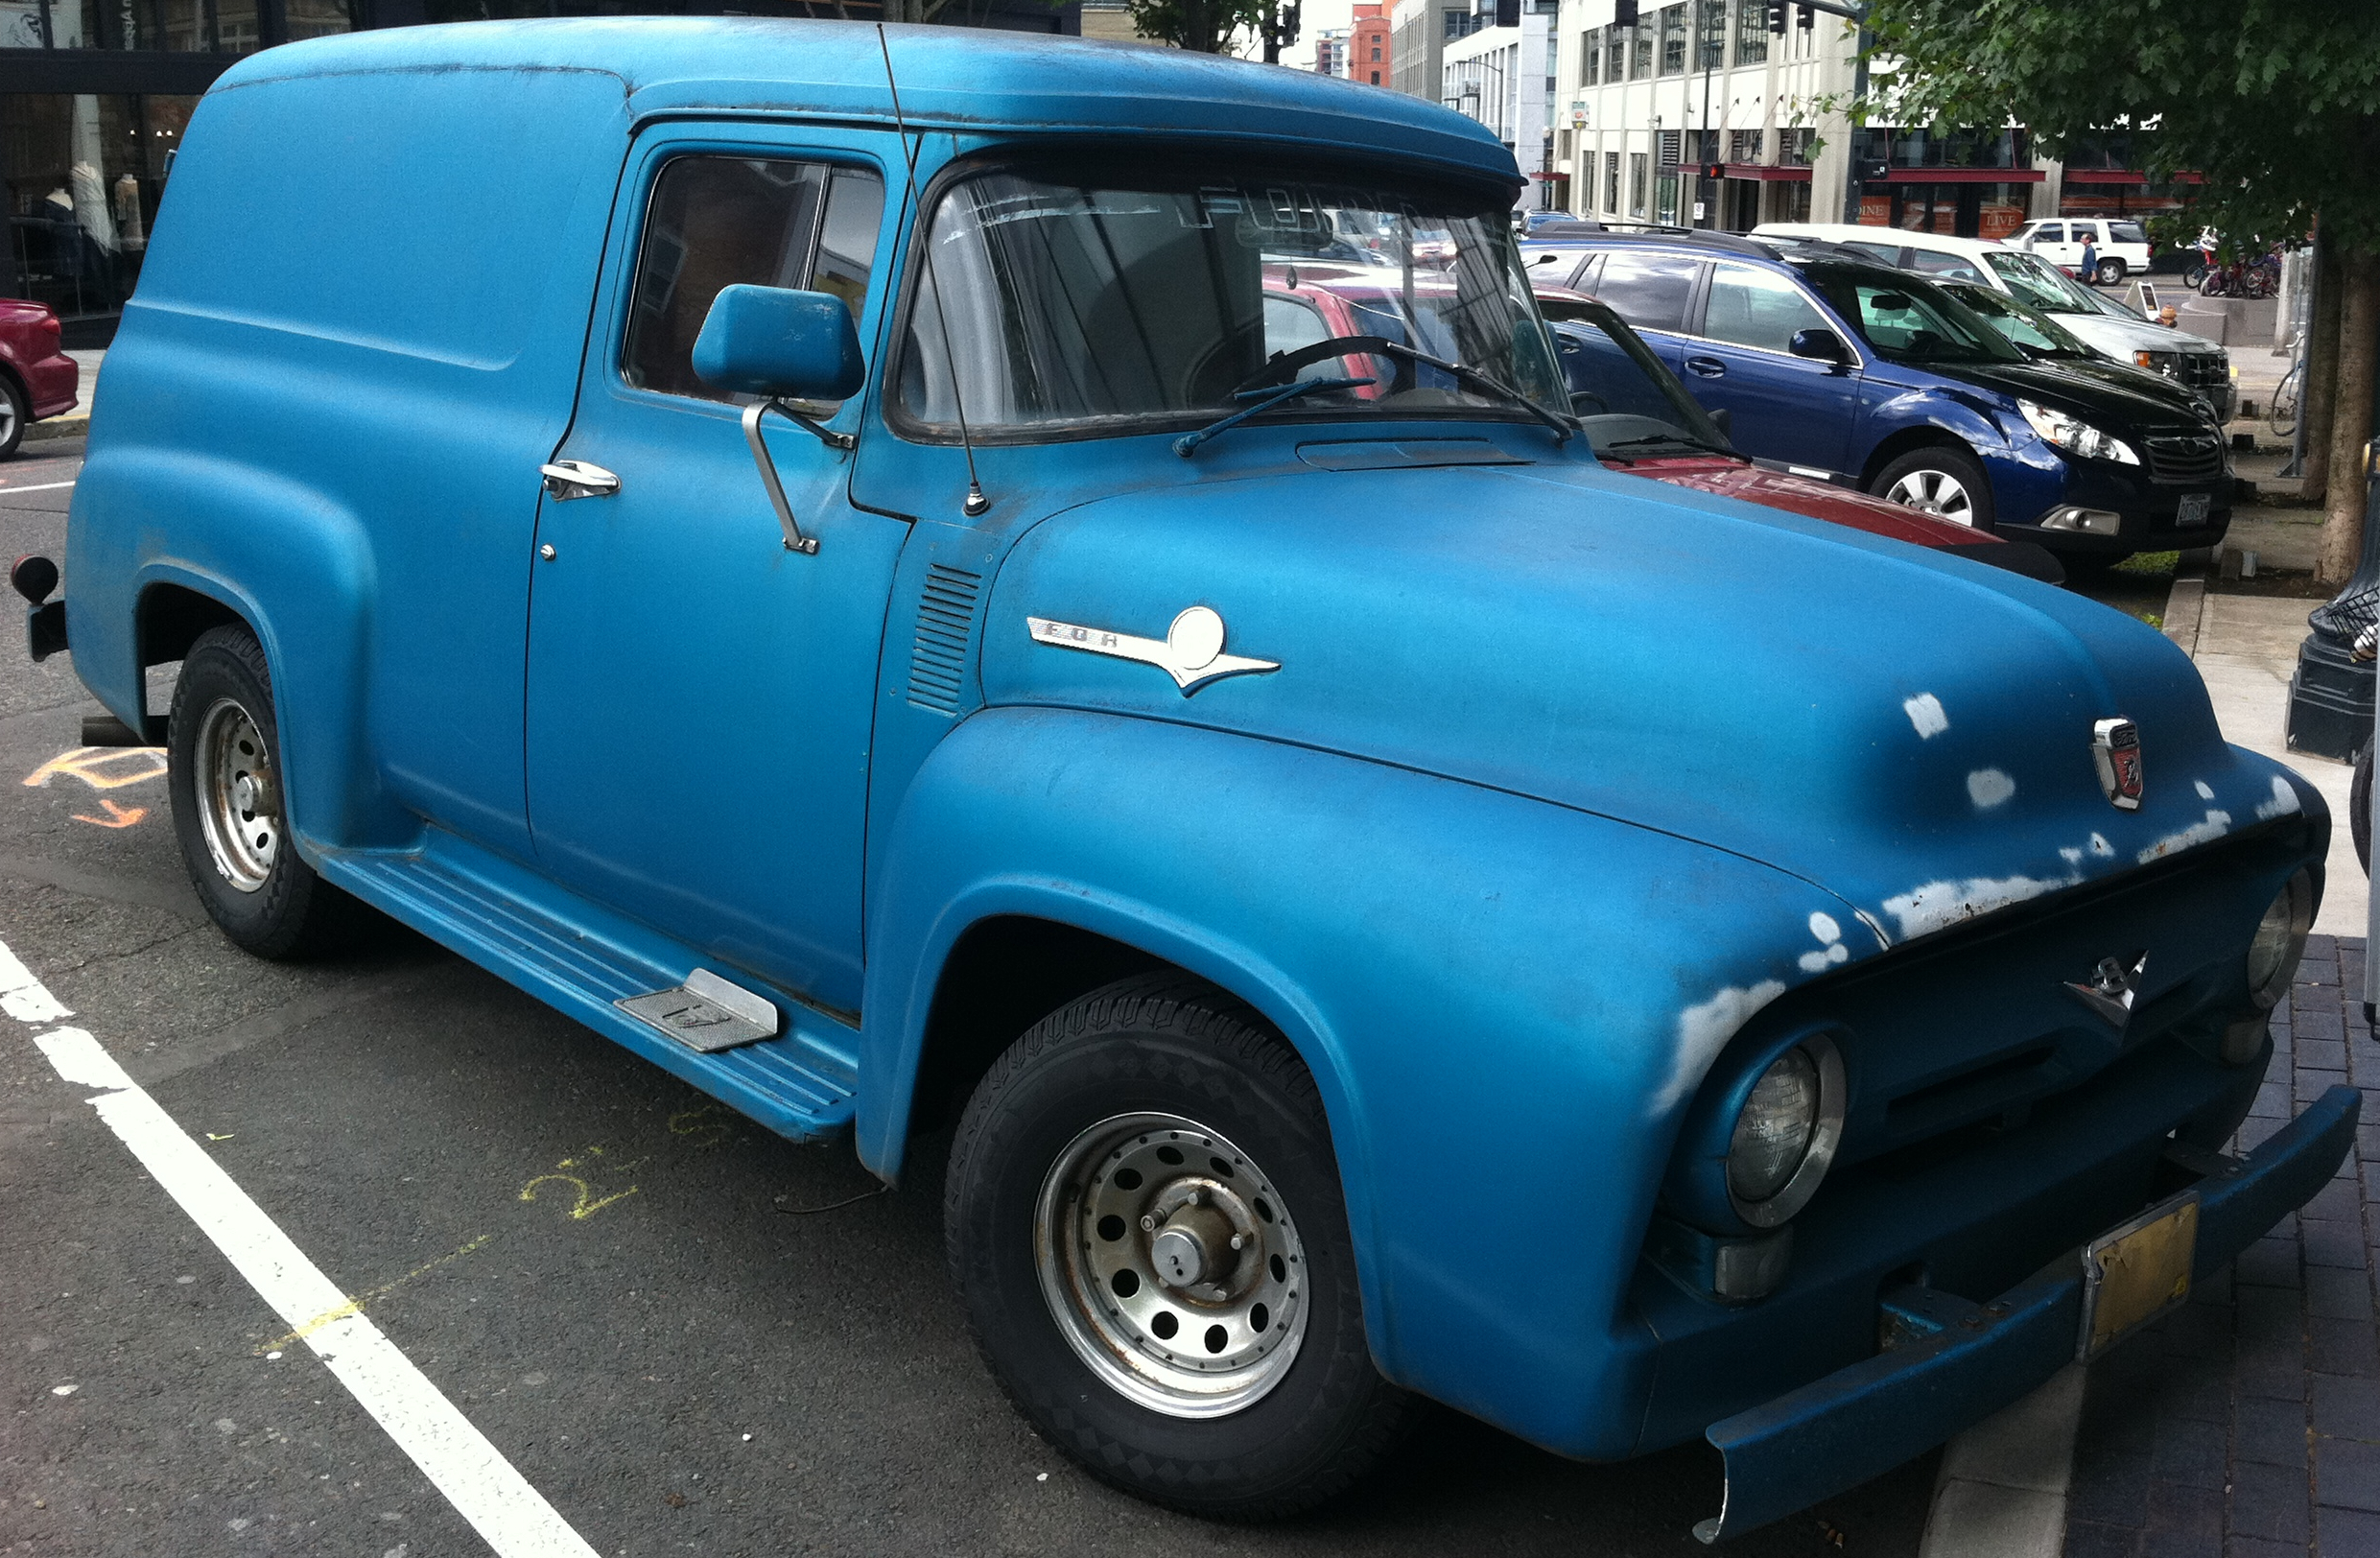 1956 Ford F-100 Panel wallpapers, Vehicles, HQ 1956 Ford F ...  Ford Truck Wiring Diagram on